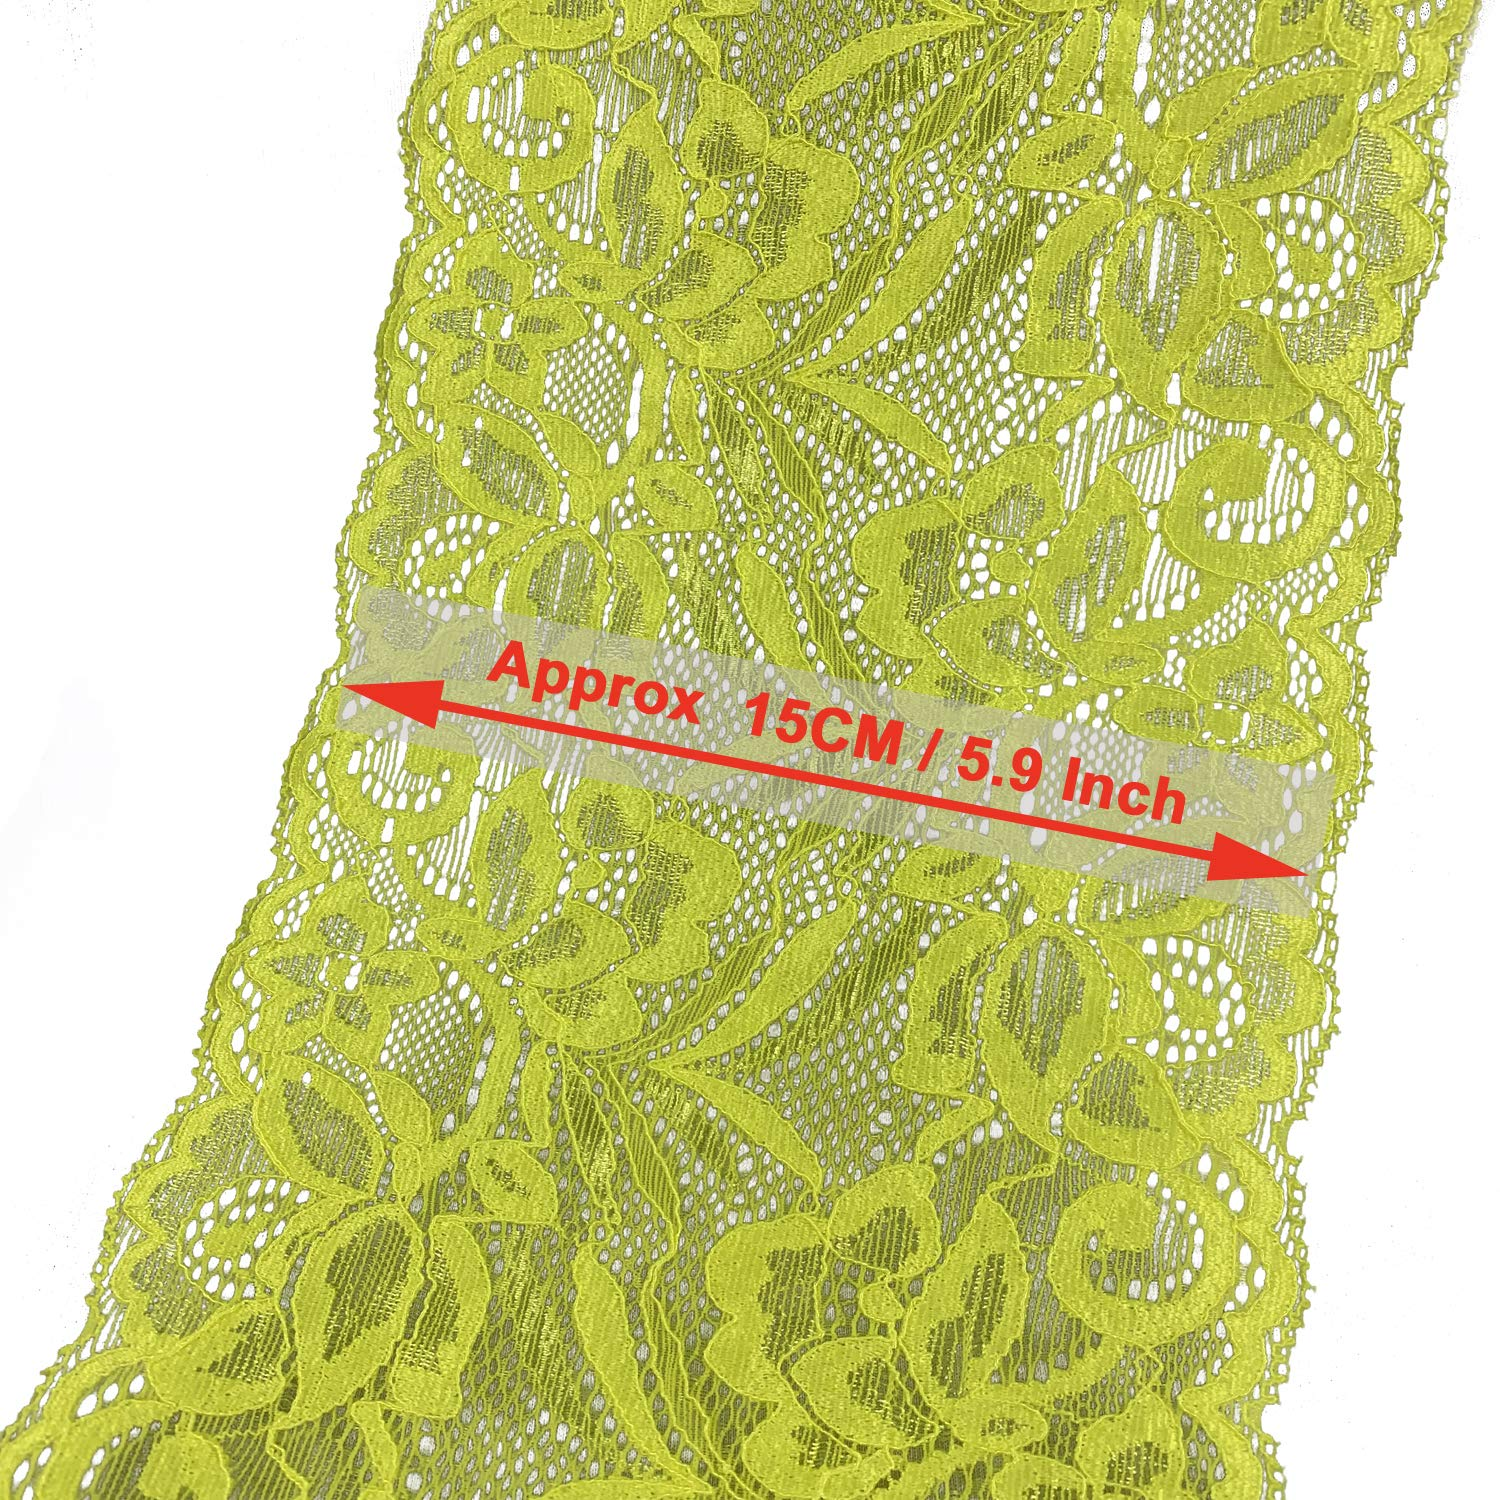 10 Yards 5.9 15CM Orange Width Stretch Polyester Embroidery Floral Pattern Elastic Lace Trimming DTY Craft Supply Clothing Accessories